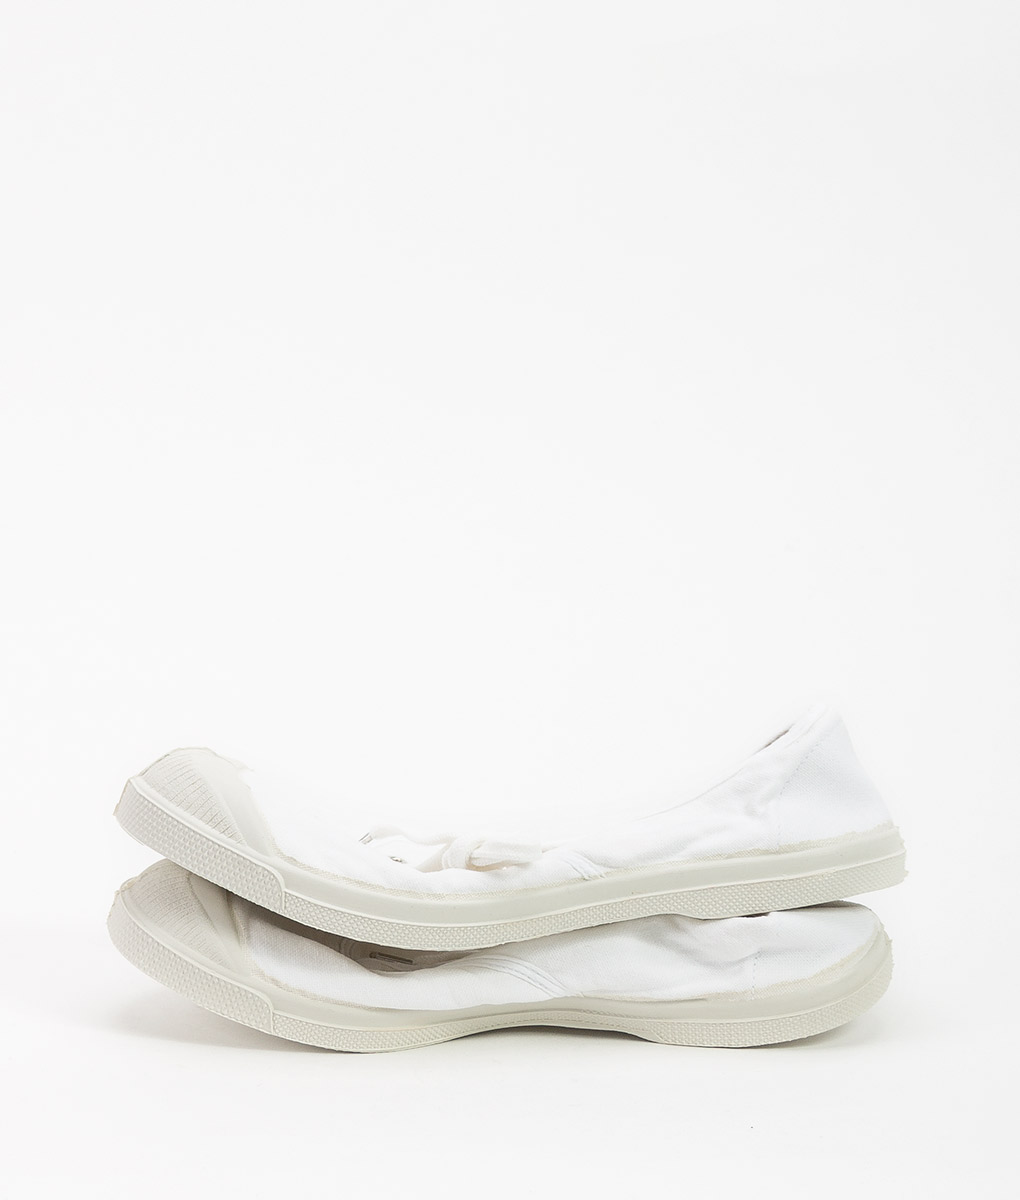 BENSIMON Women Sneakers 101 LACET White 34.99